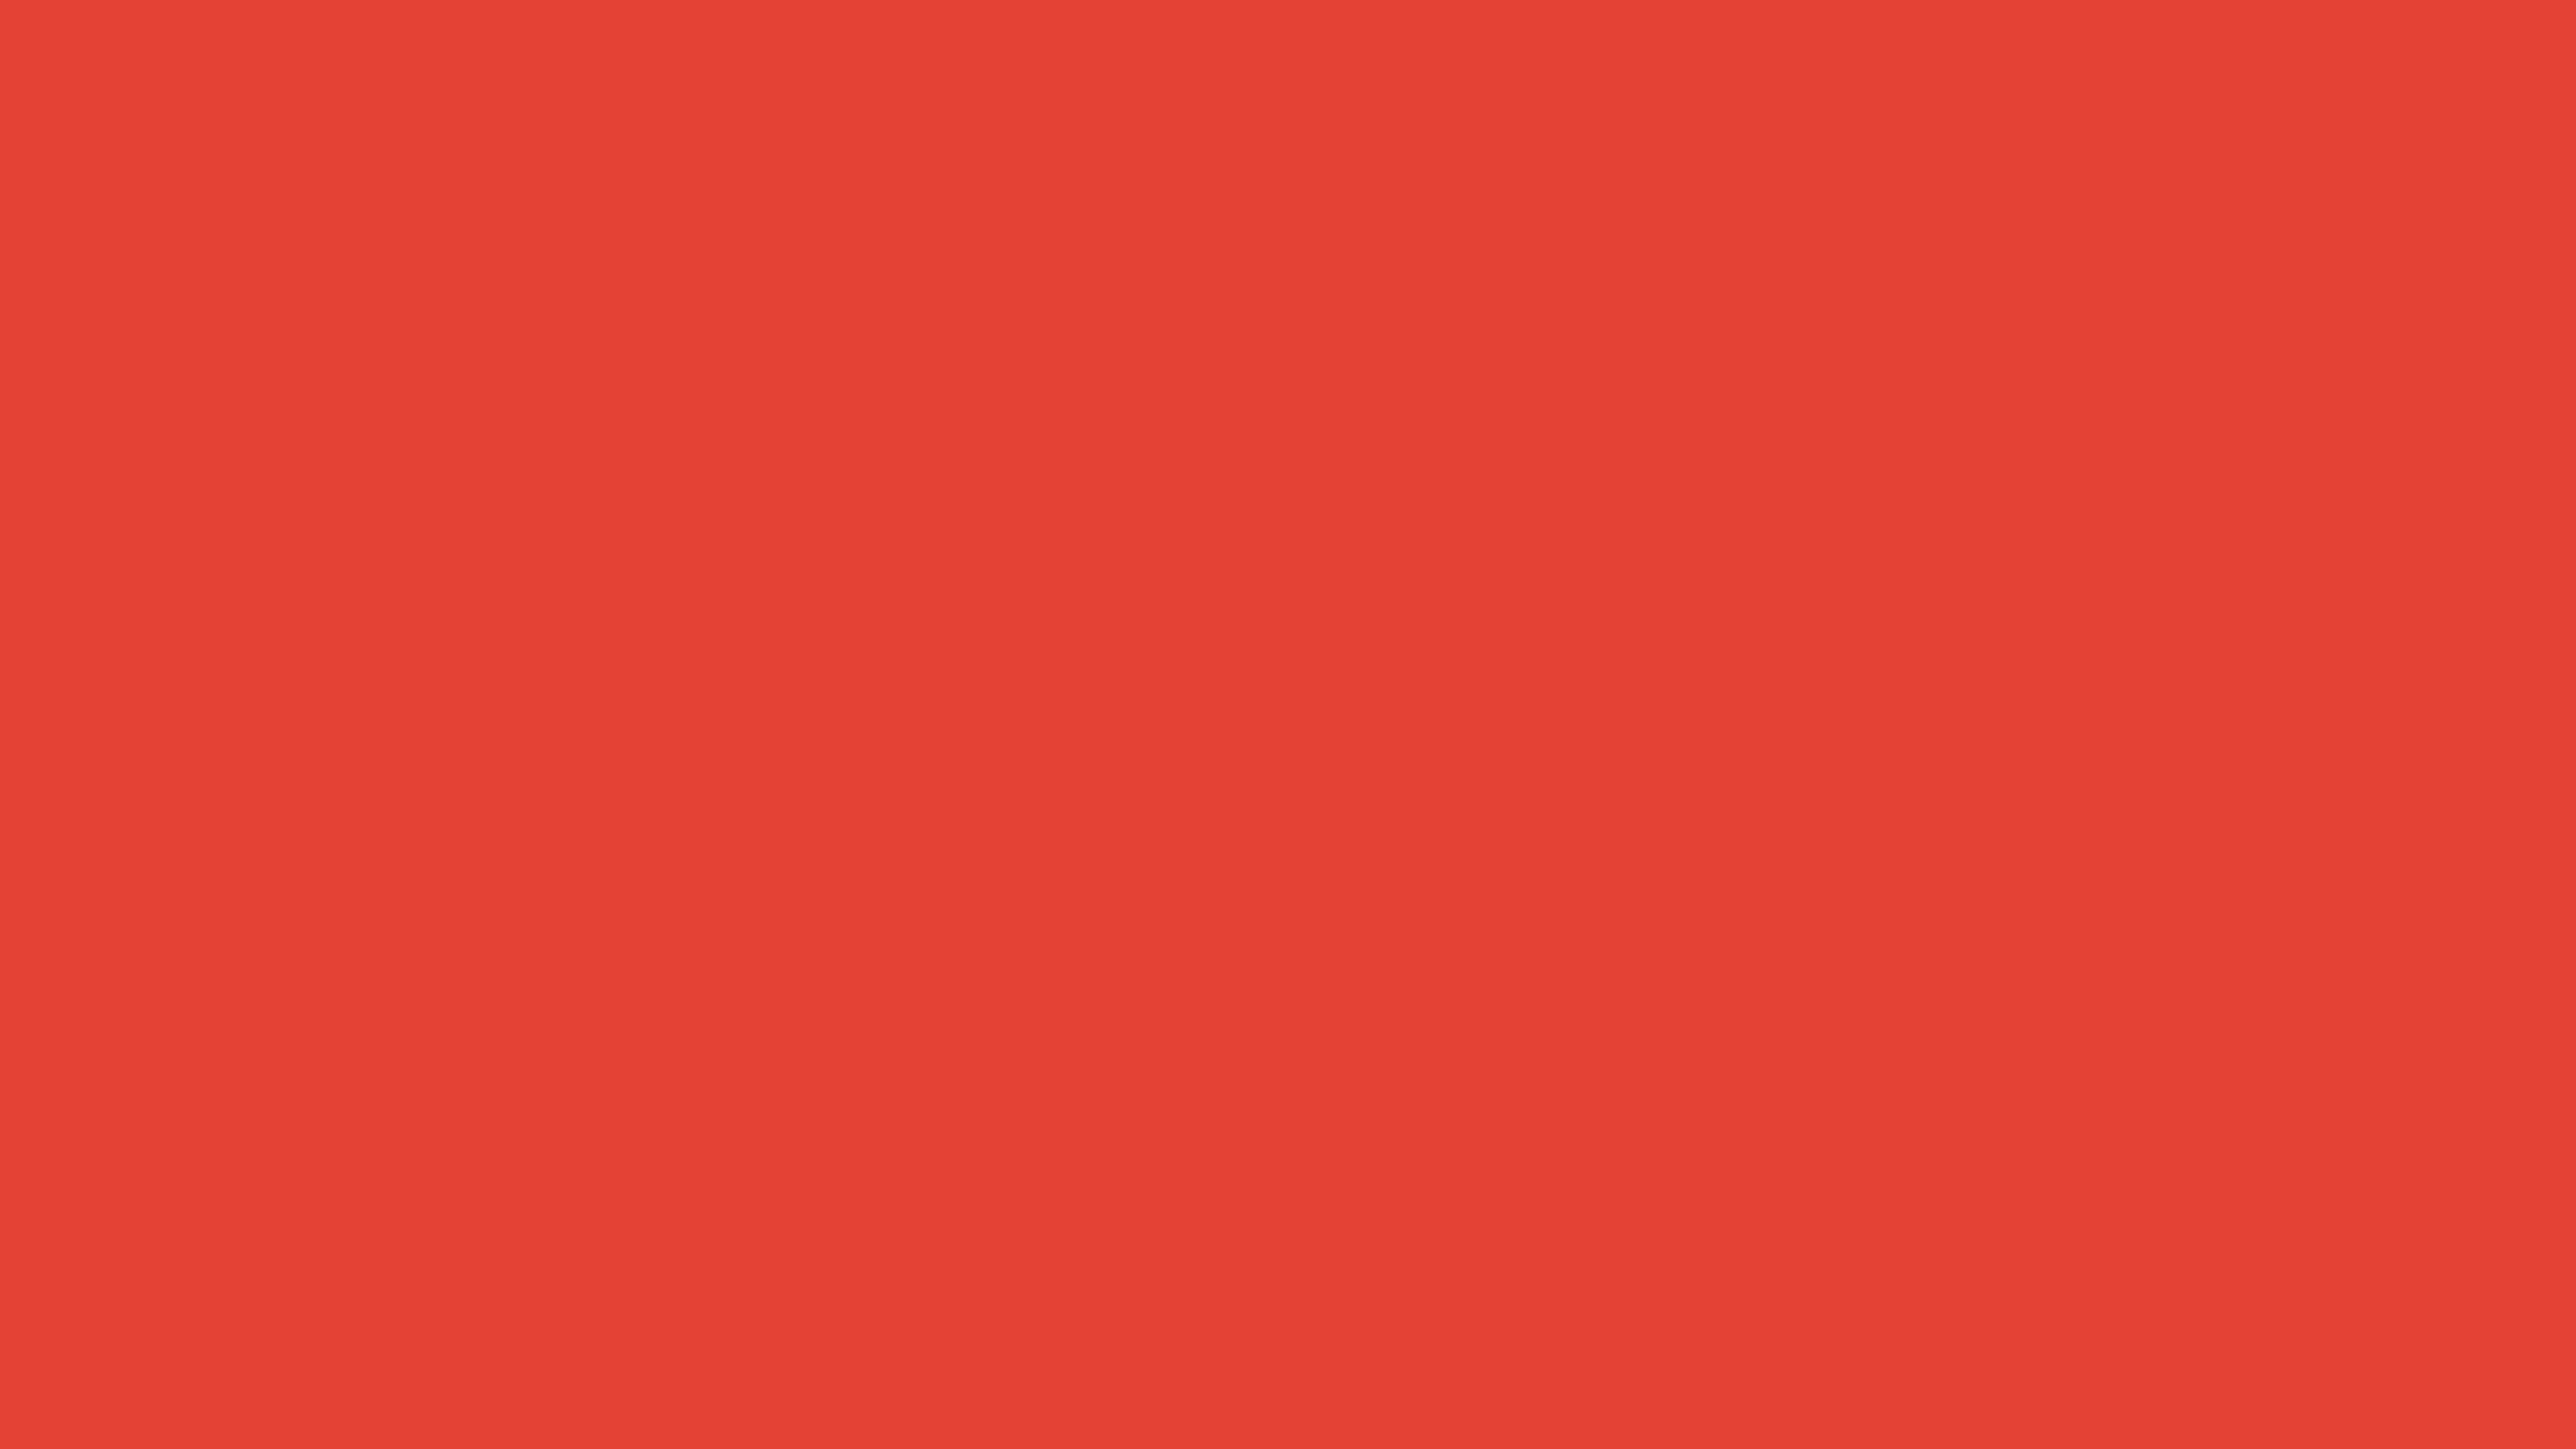 5120x2880 Cinnabar Solid Color Background